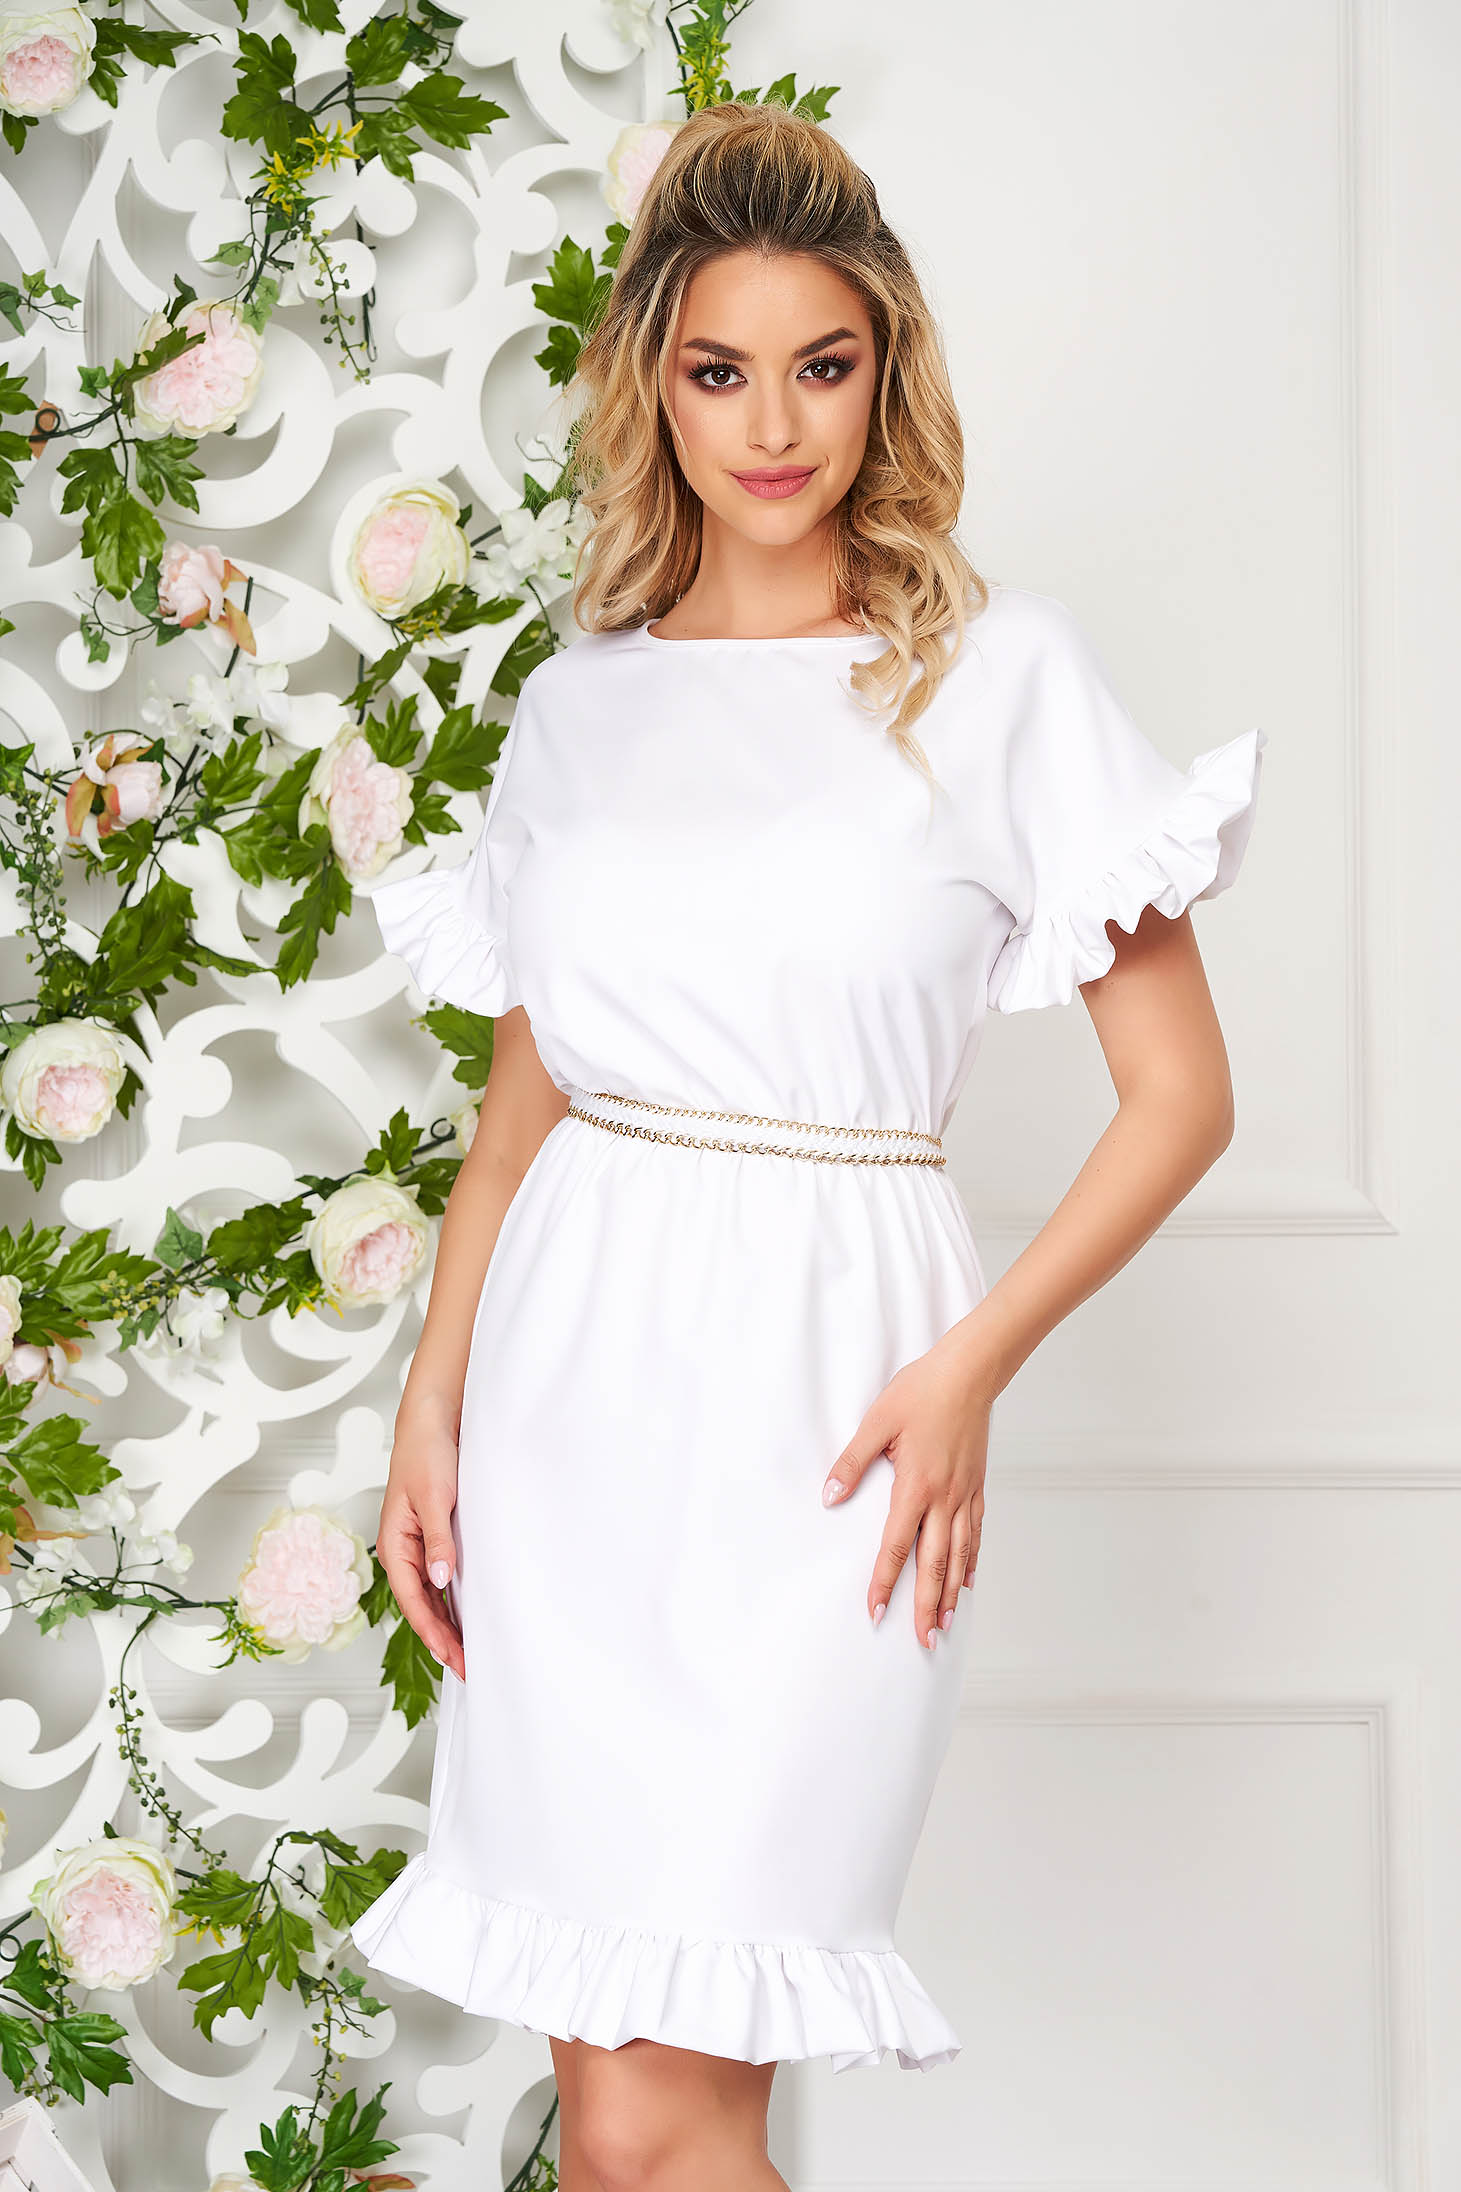 Dress StarShinerS white elegant short cut daily pencil cloth from elastic fabric with ruffled sleeves